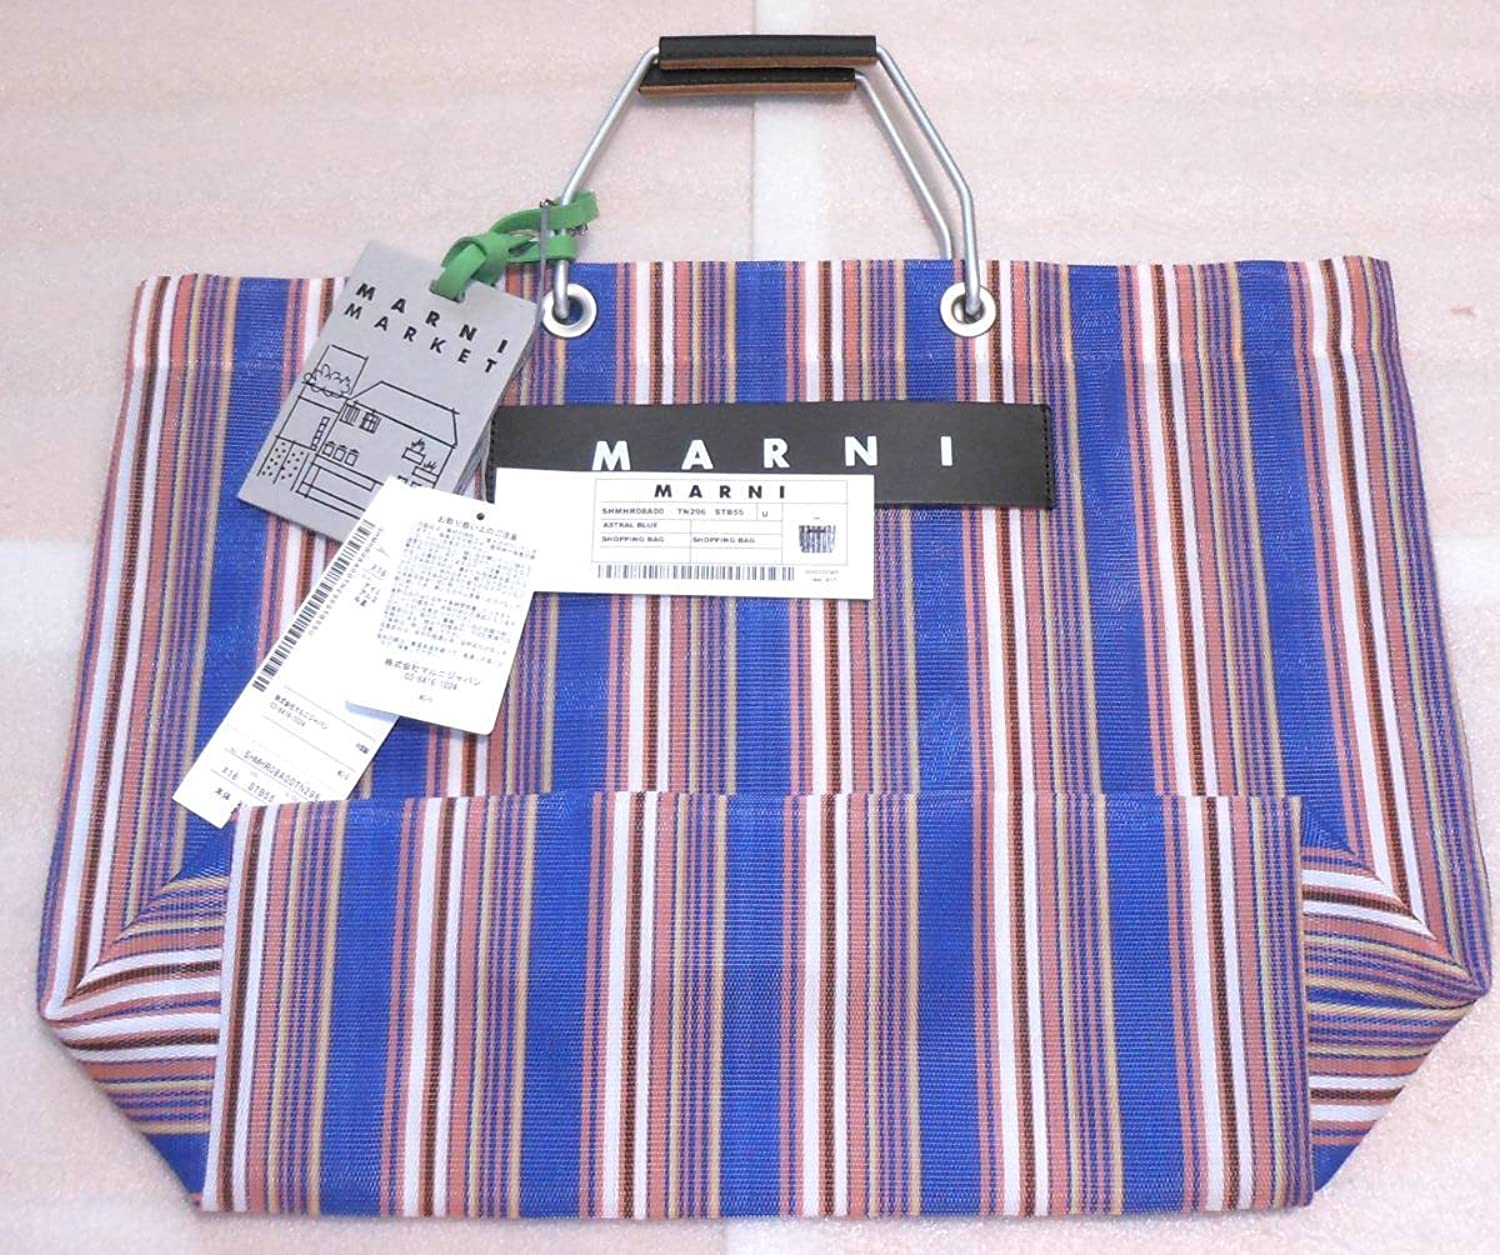 MARNIフラワーカフェトートバッグ ASTRAL BLUE B07DRM458Z